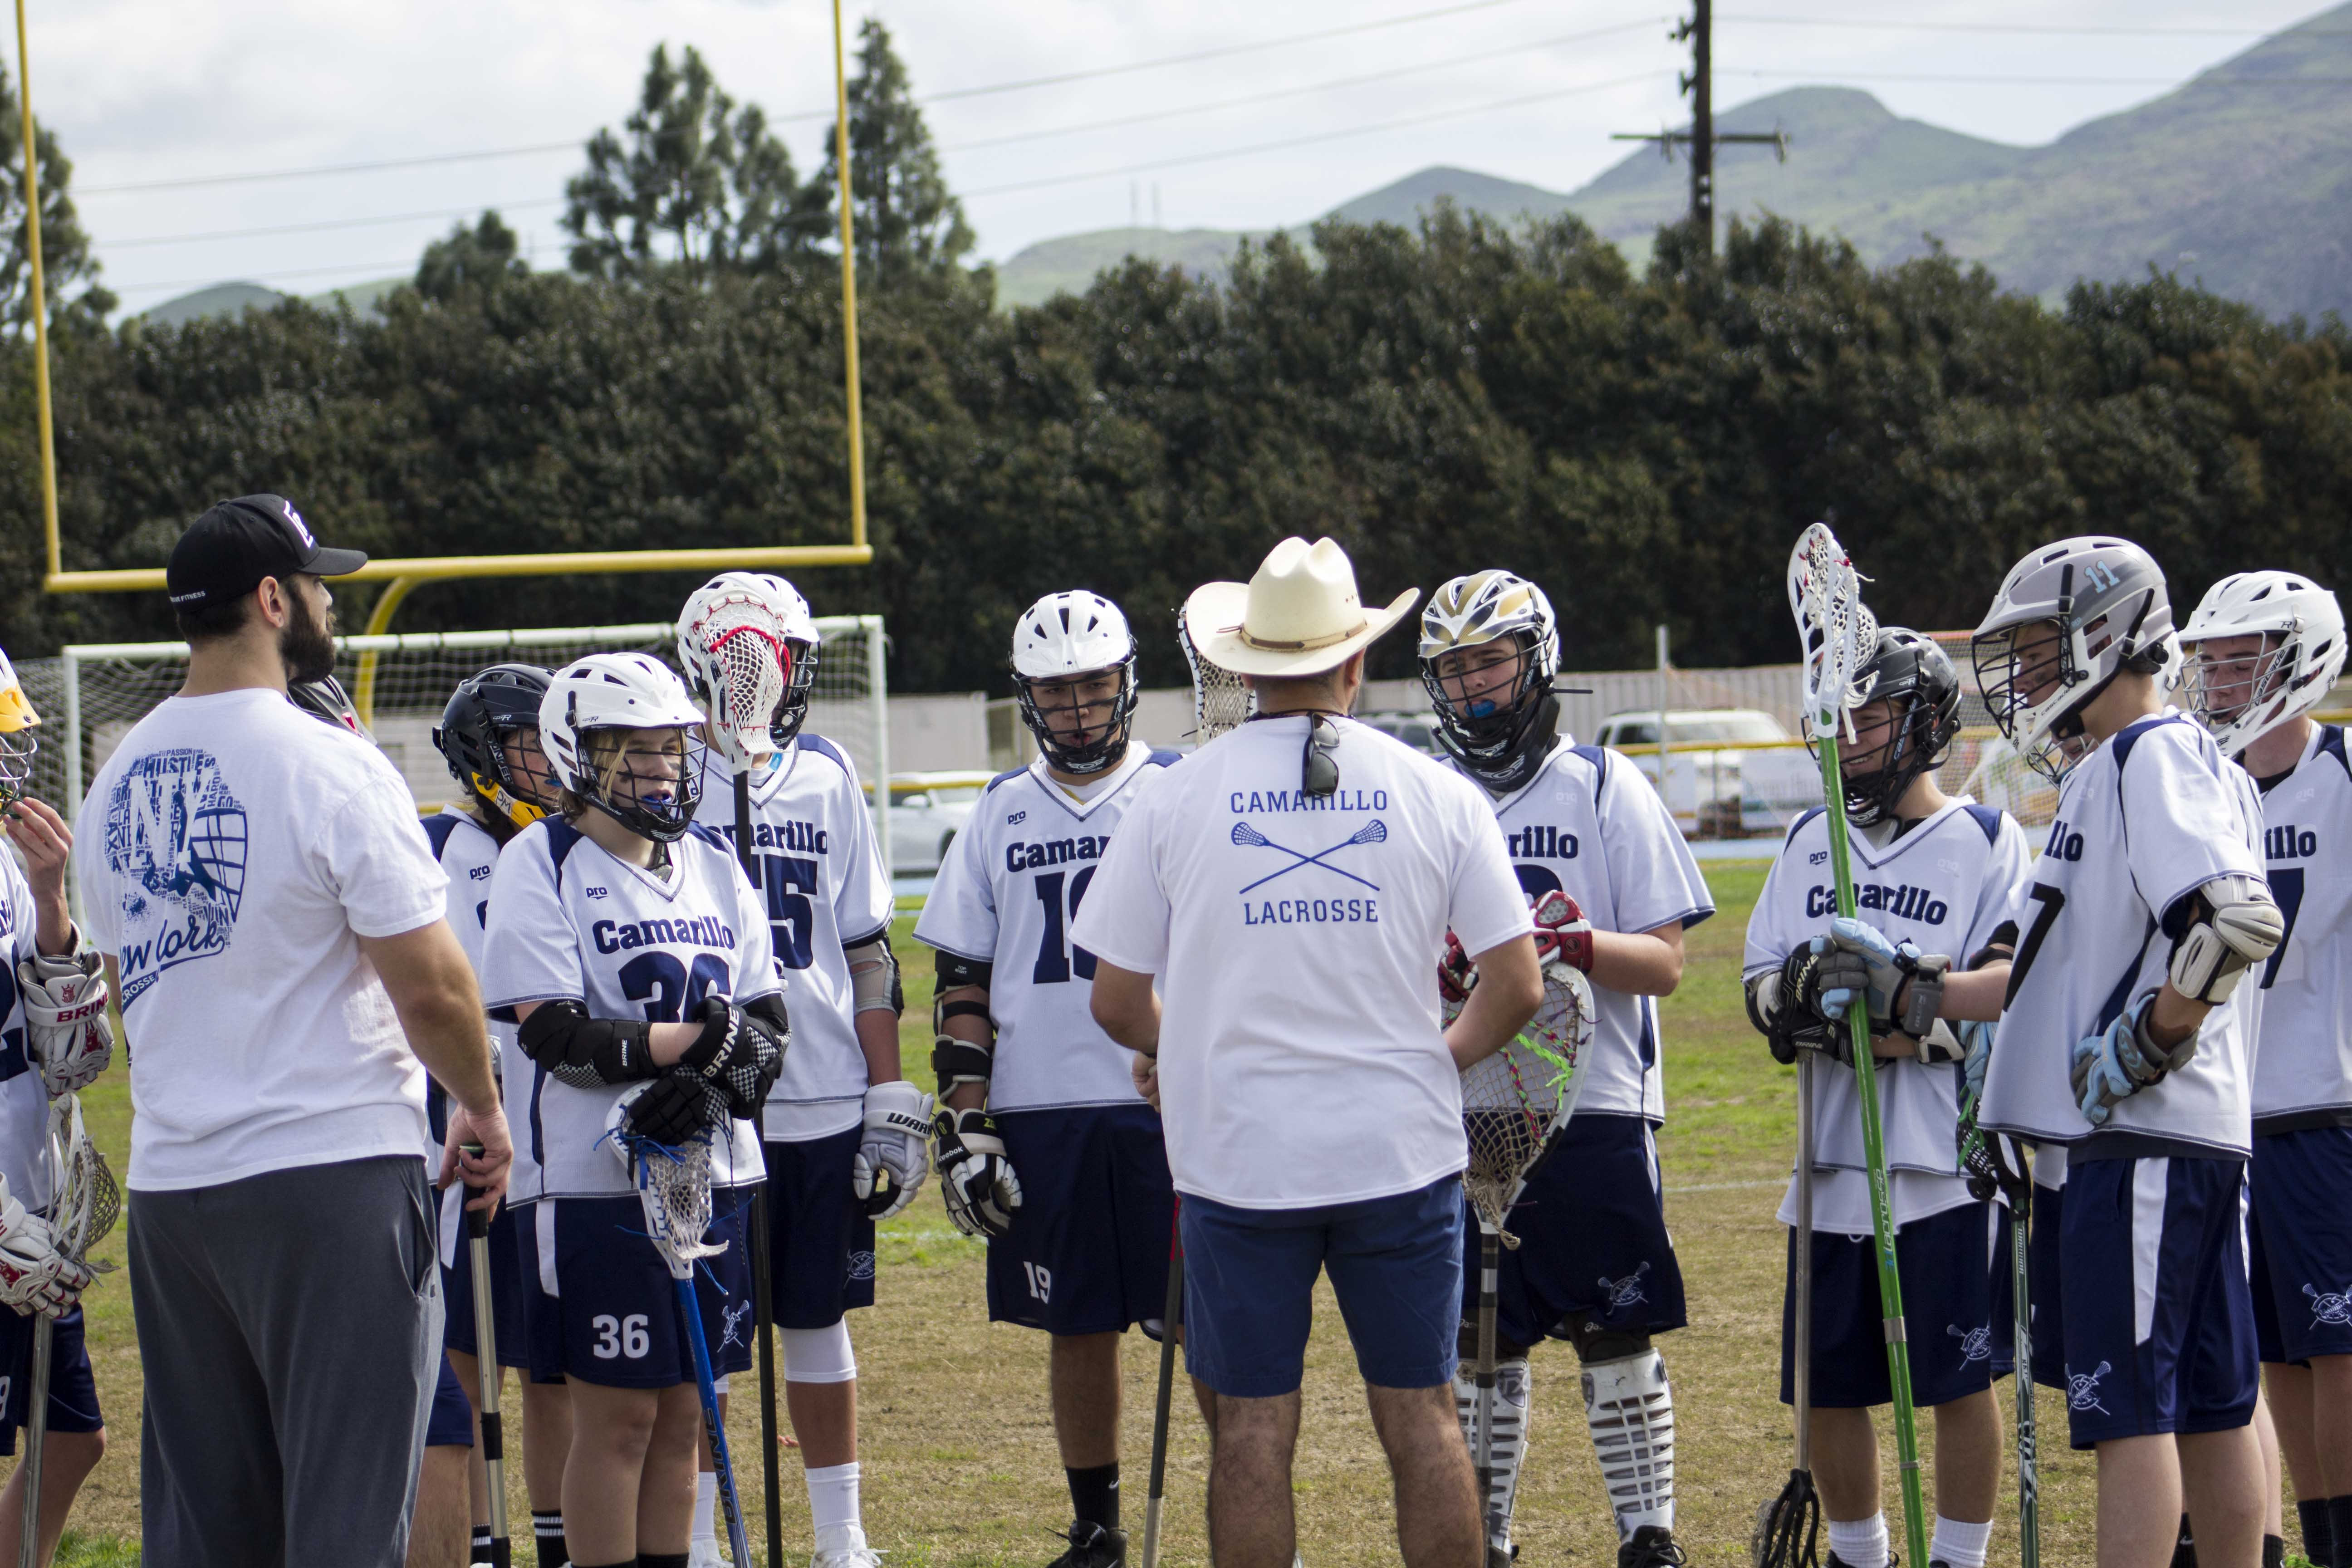 The team discussing game strategies during halftime with the coach, Andrew Morales.